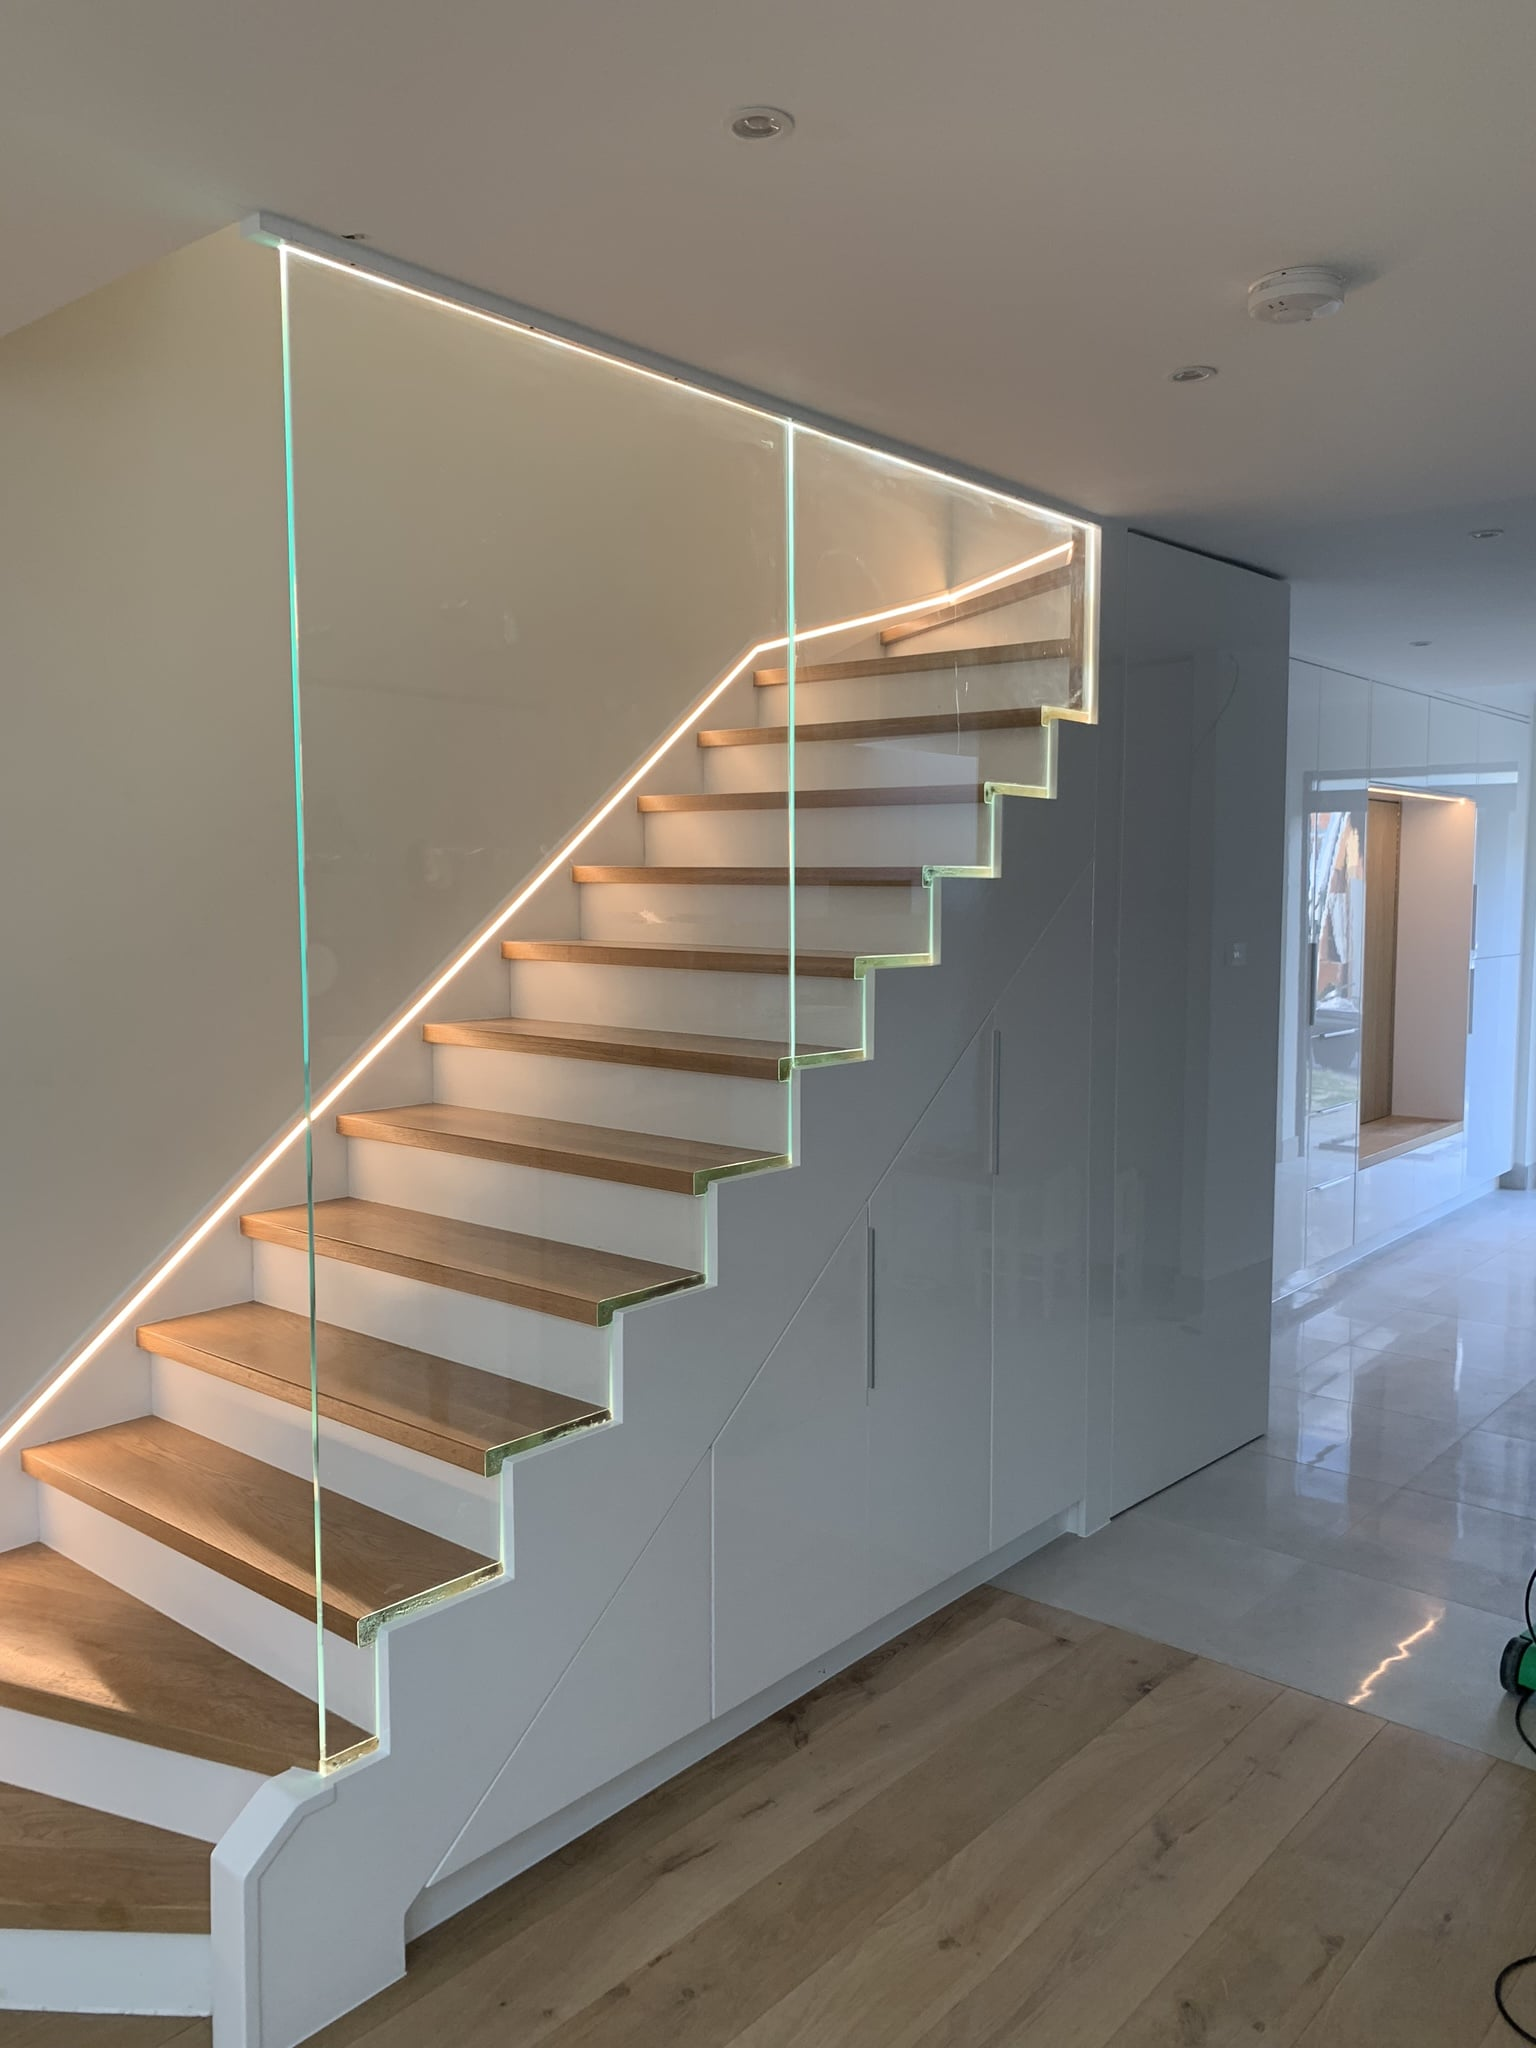 Staircase with storage. Safety 12mm glass banister with LED lights.